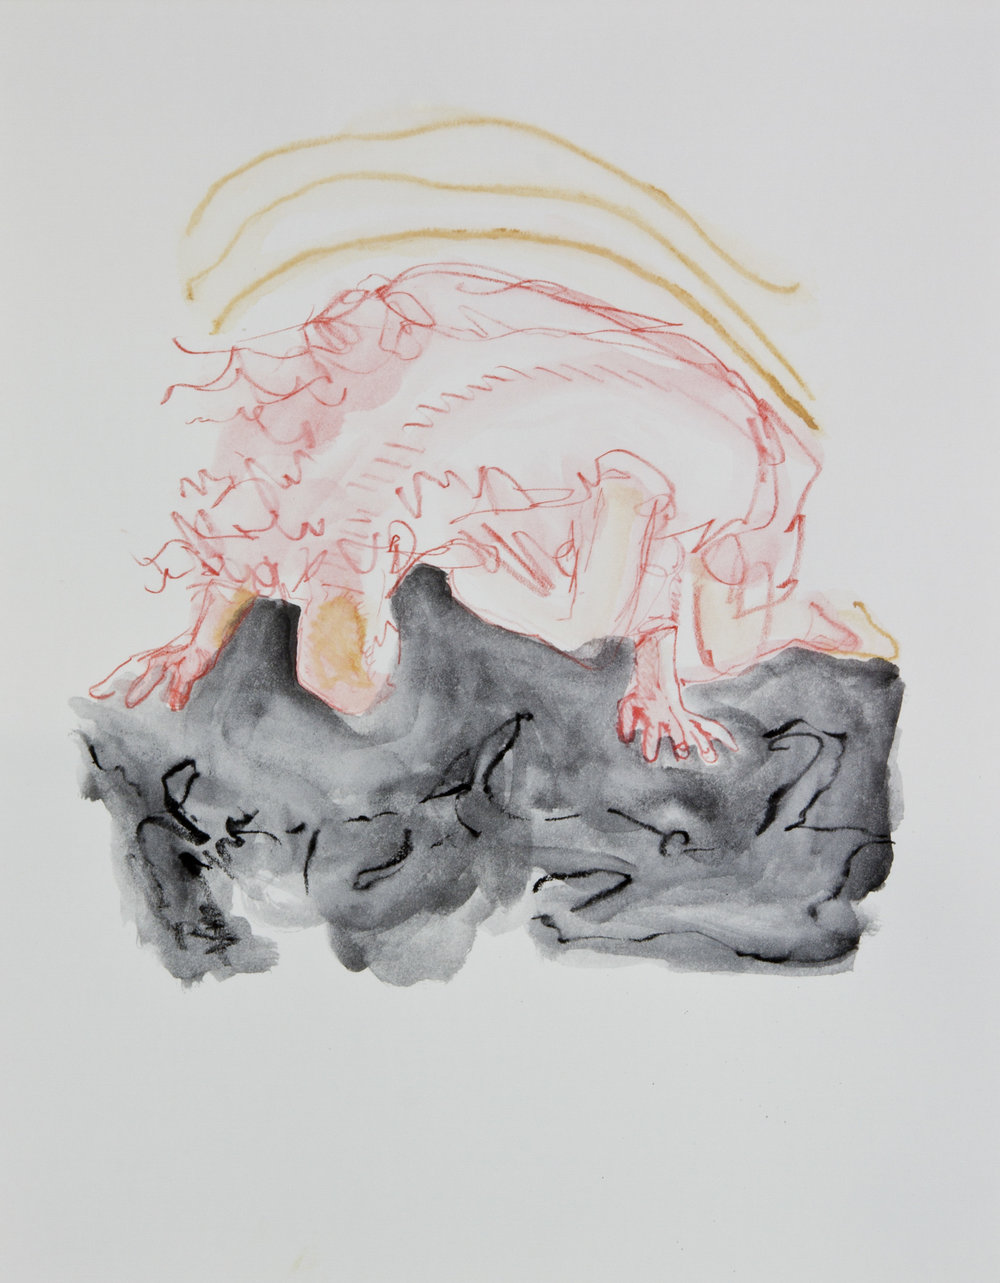 Bowing To The Abyss, 2013, graphite, crayon and watercolor pencil on paper, 11x14 inches